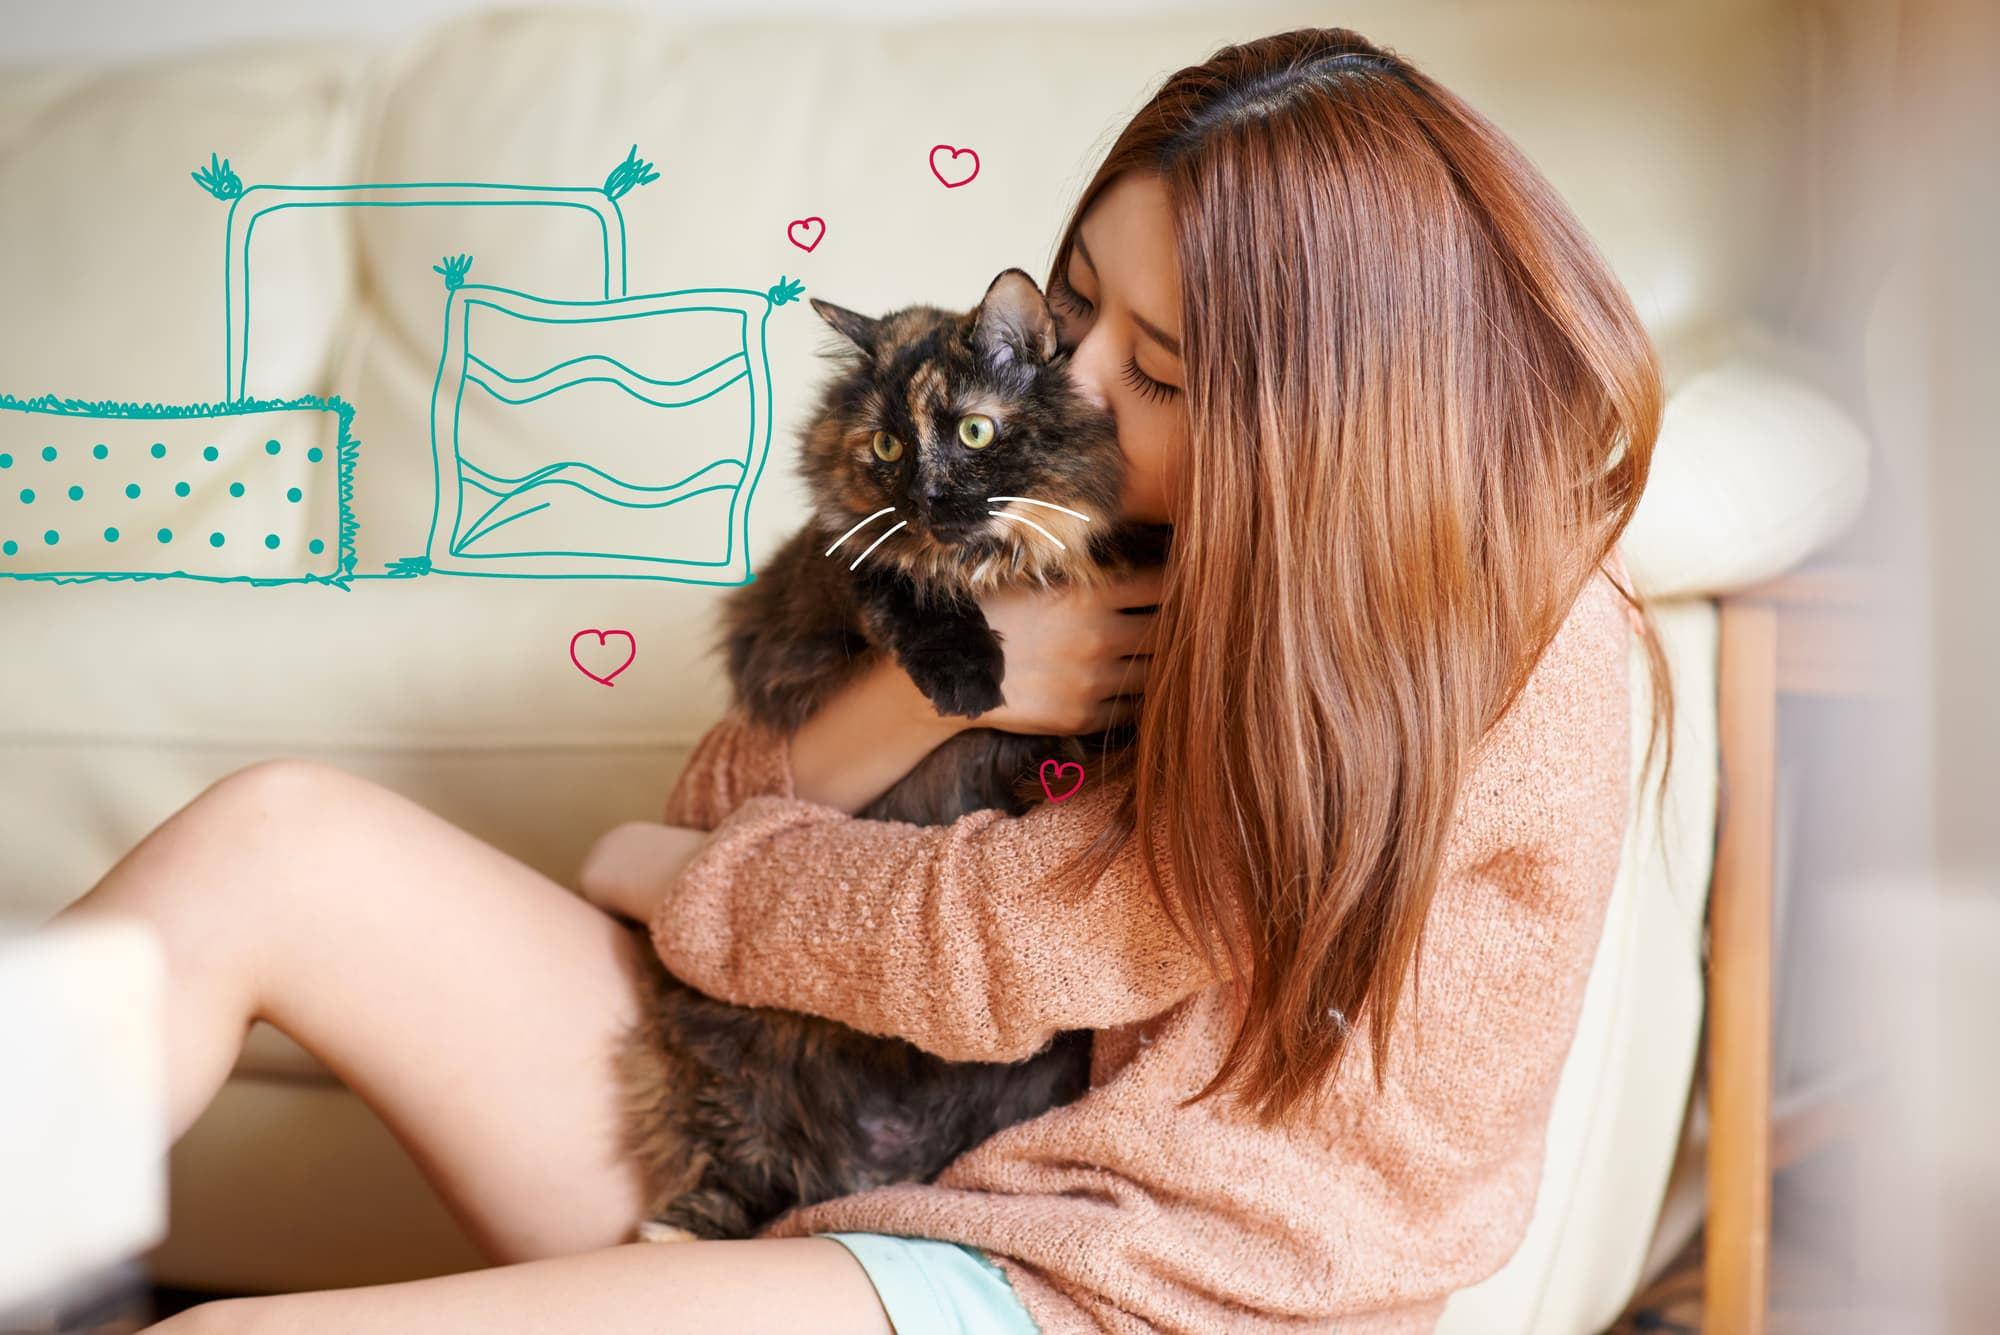 Flea treatments for cats - A lady cuddles her cat.